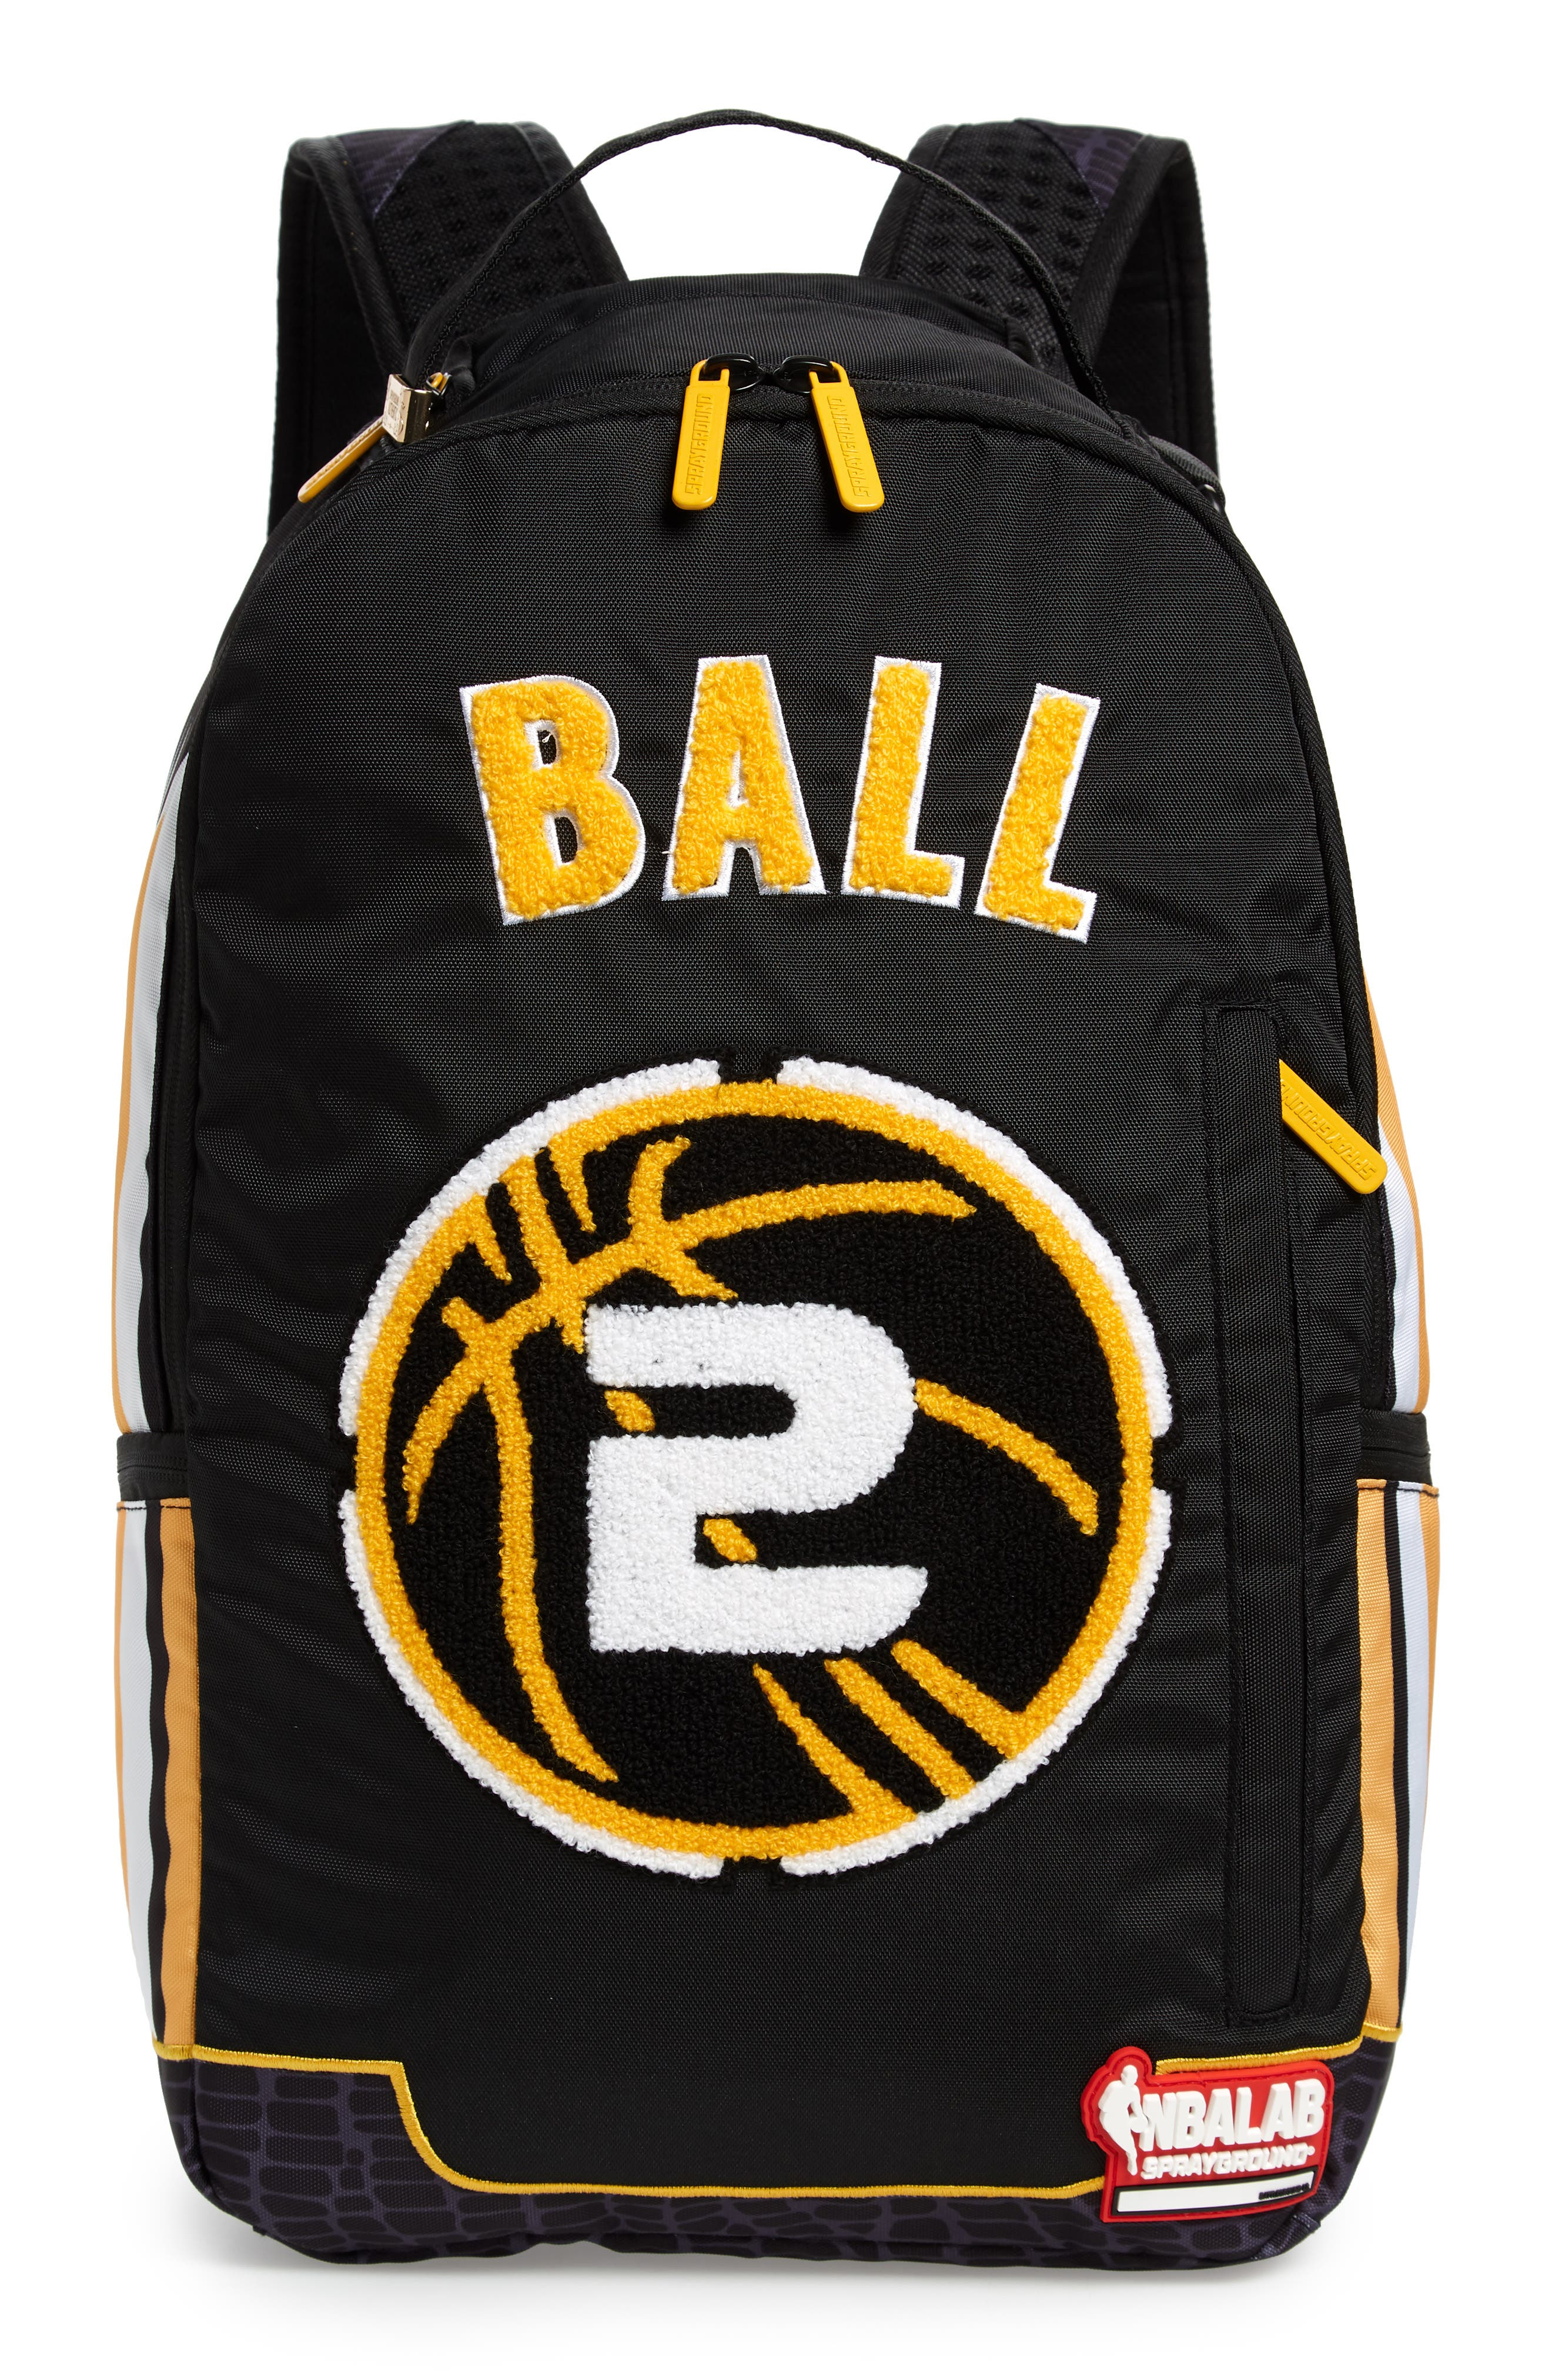 Ball Jersey Backpack,                             Main thumbnail 1, color,                             BLACK